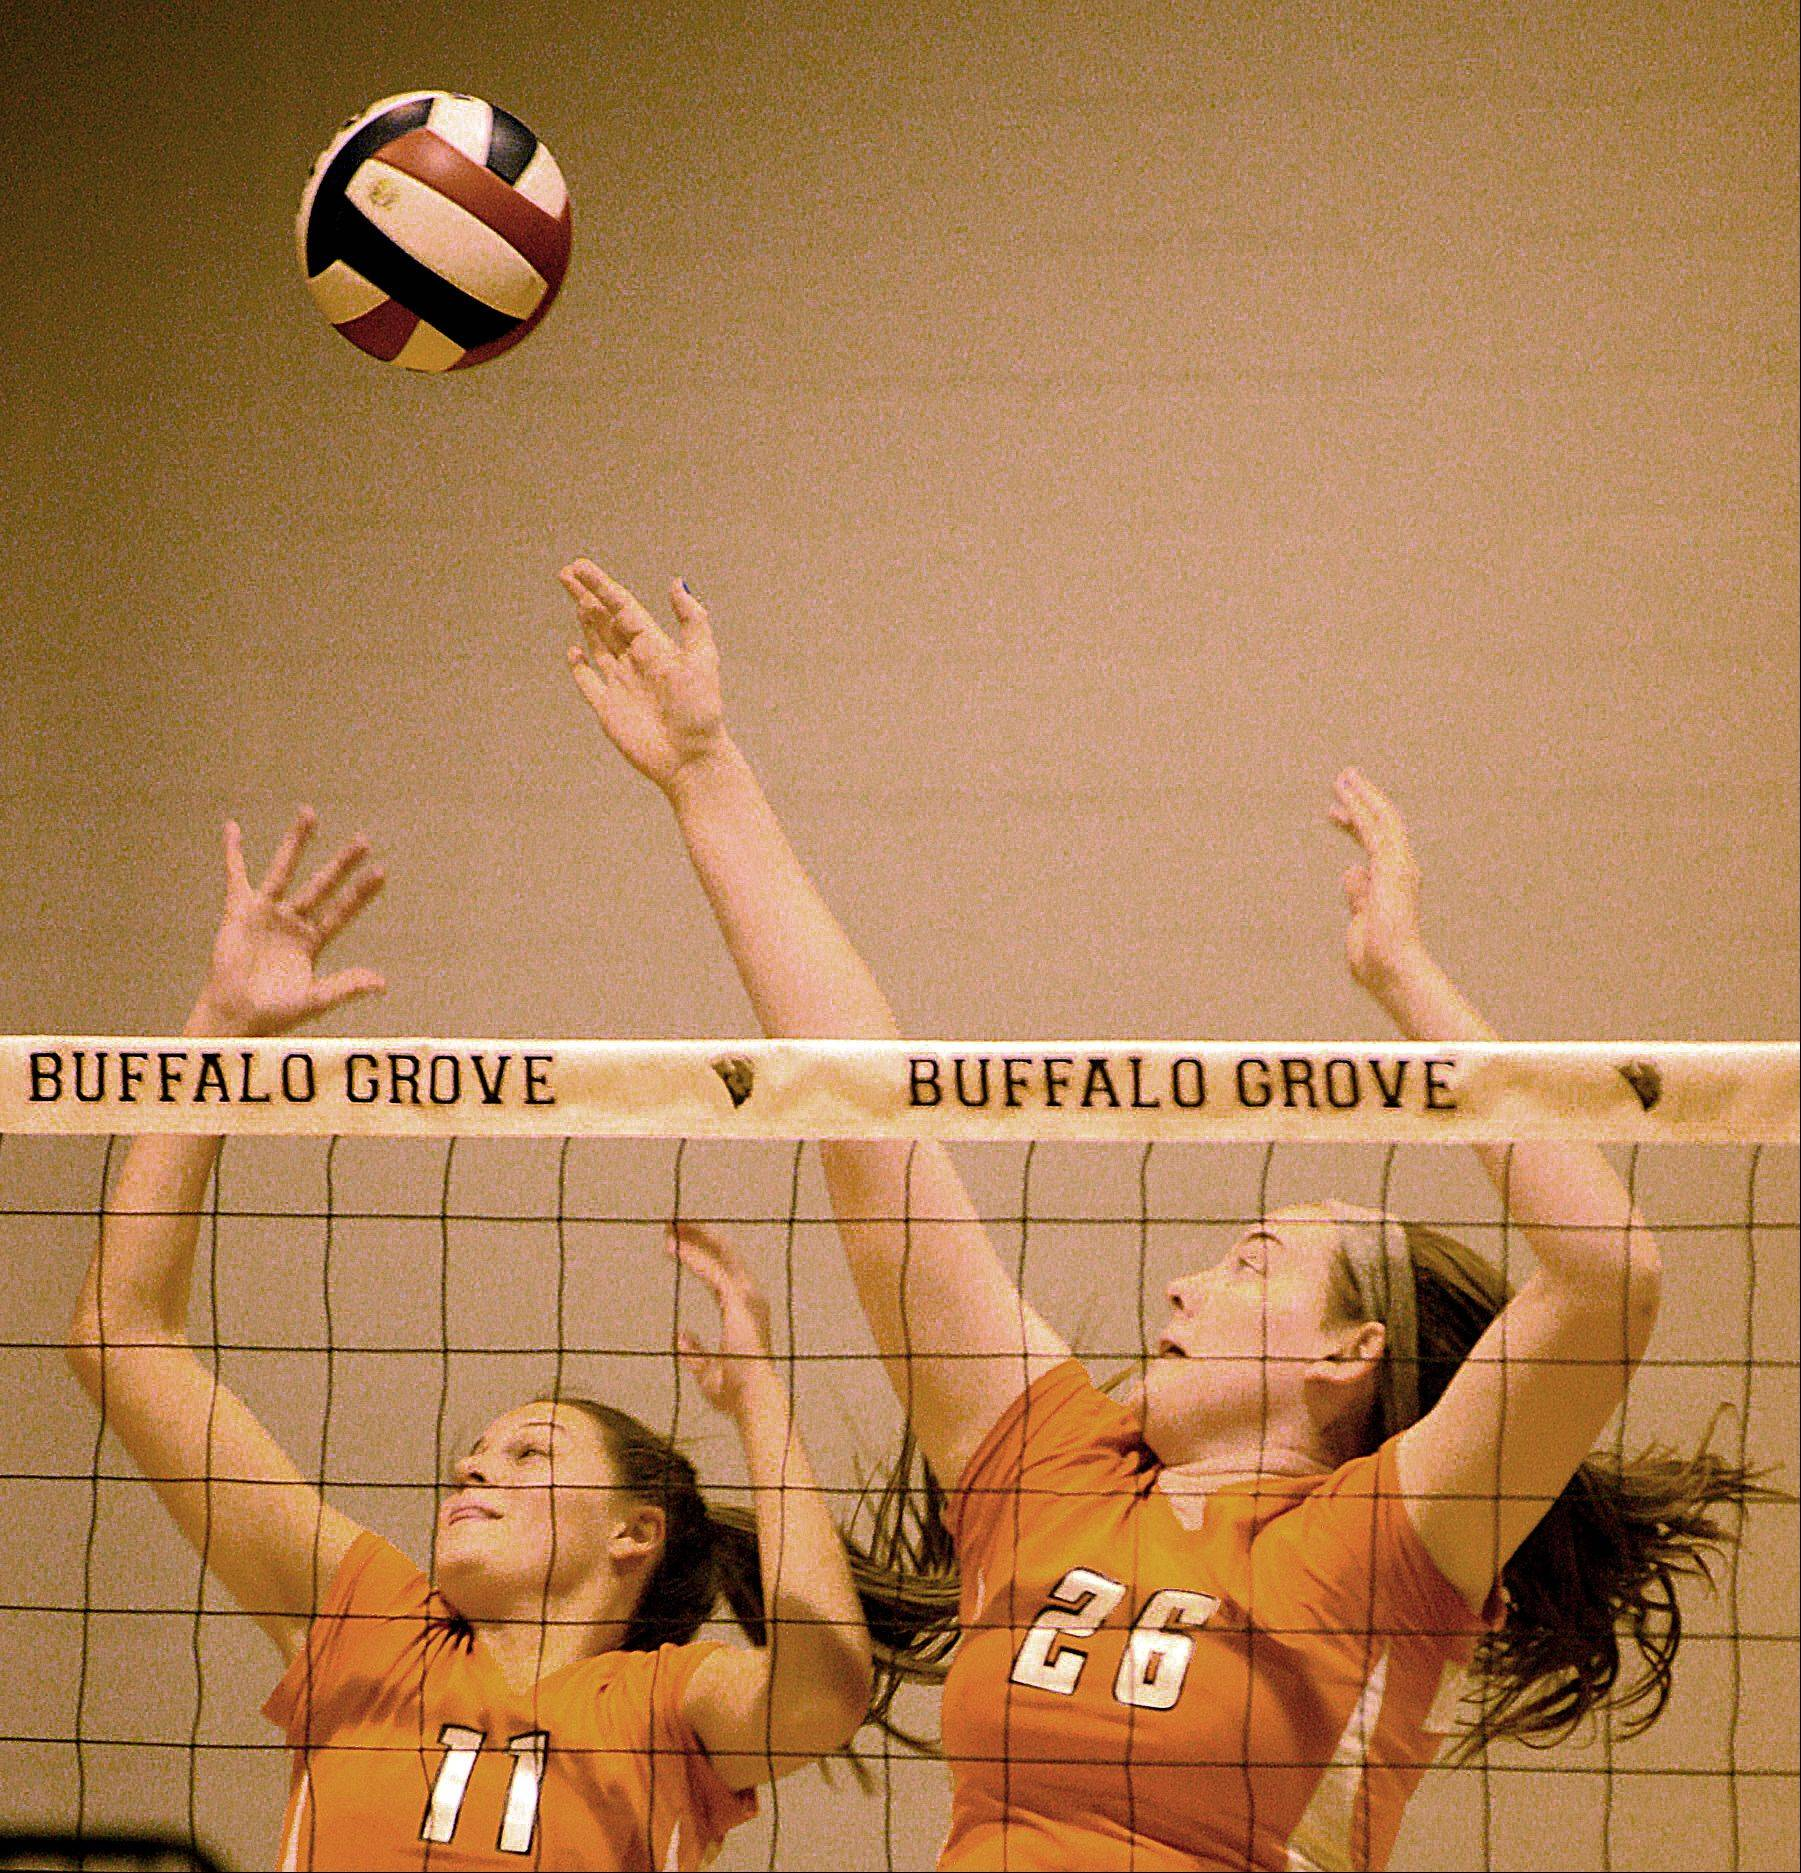 Buffalo Grove's Teagan Hutchings, left, and Colleen Nowlan, right, rise up to block the ball during a varsity volleyball game against Deerfield at Buffalo Grove on Monday night.